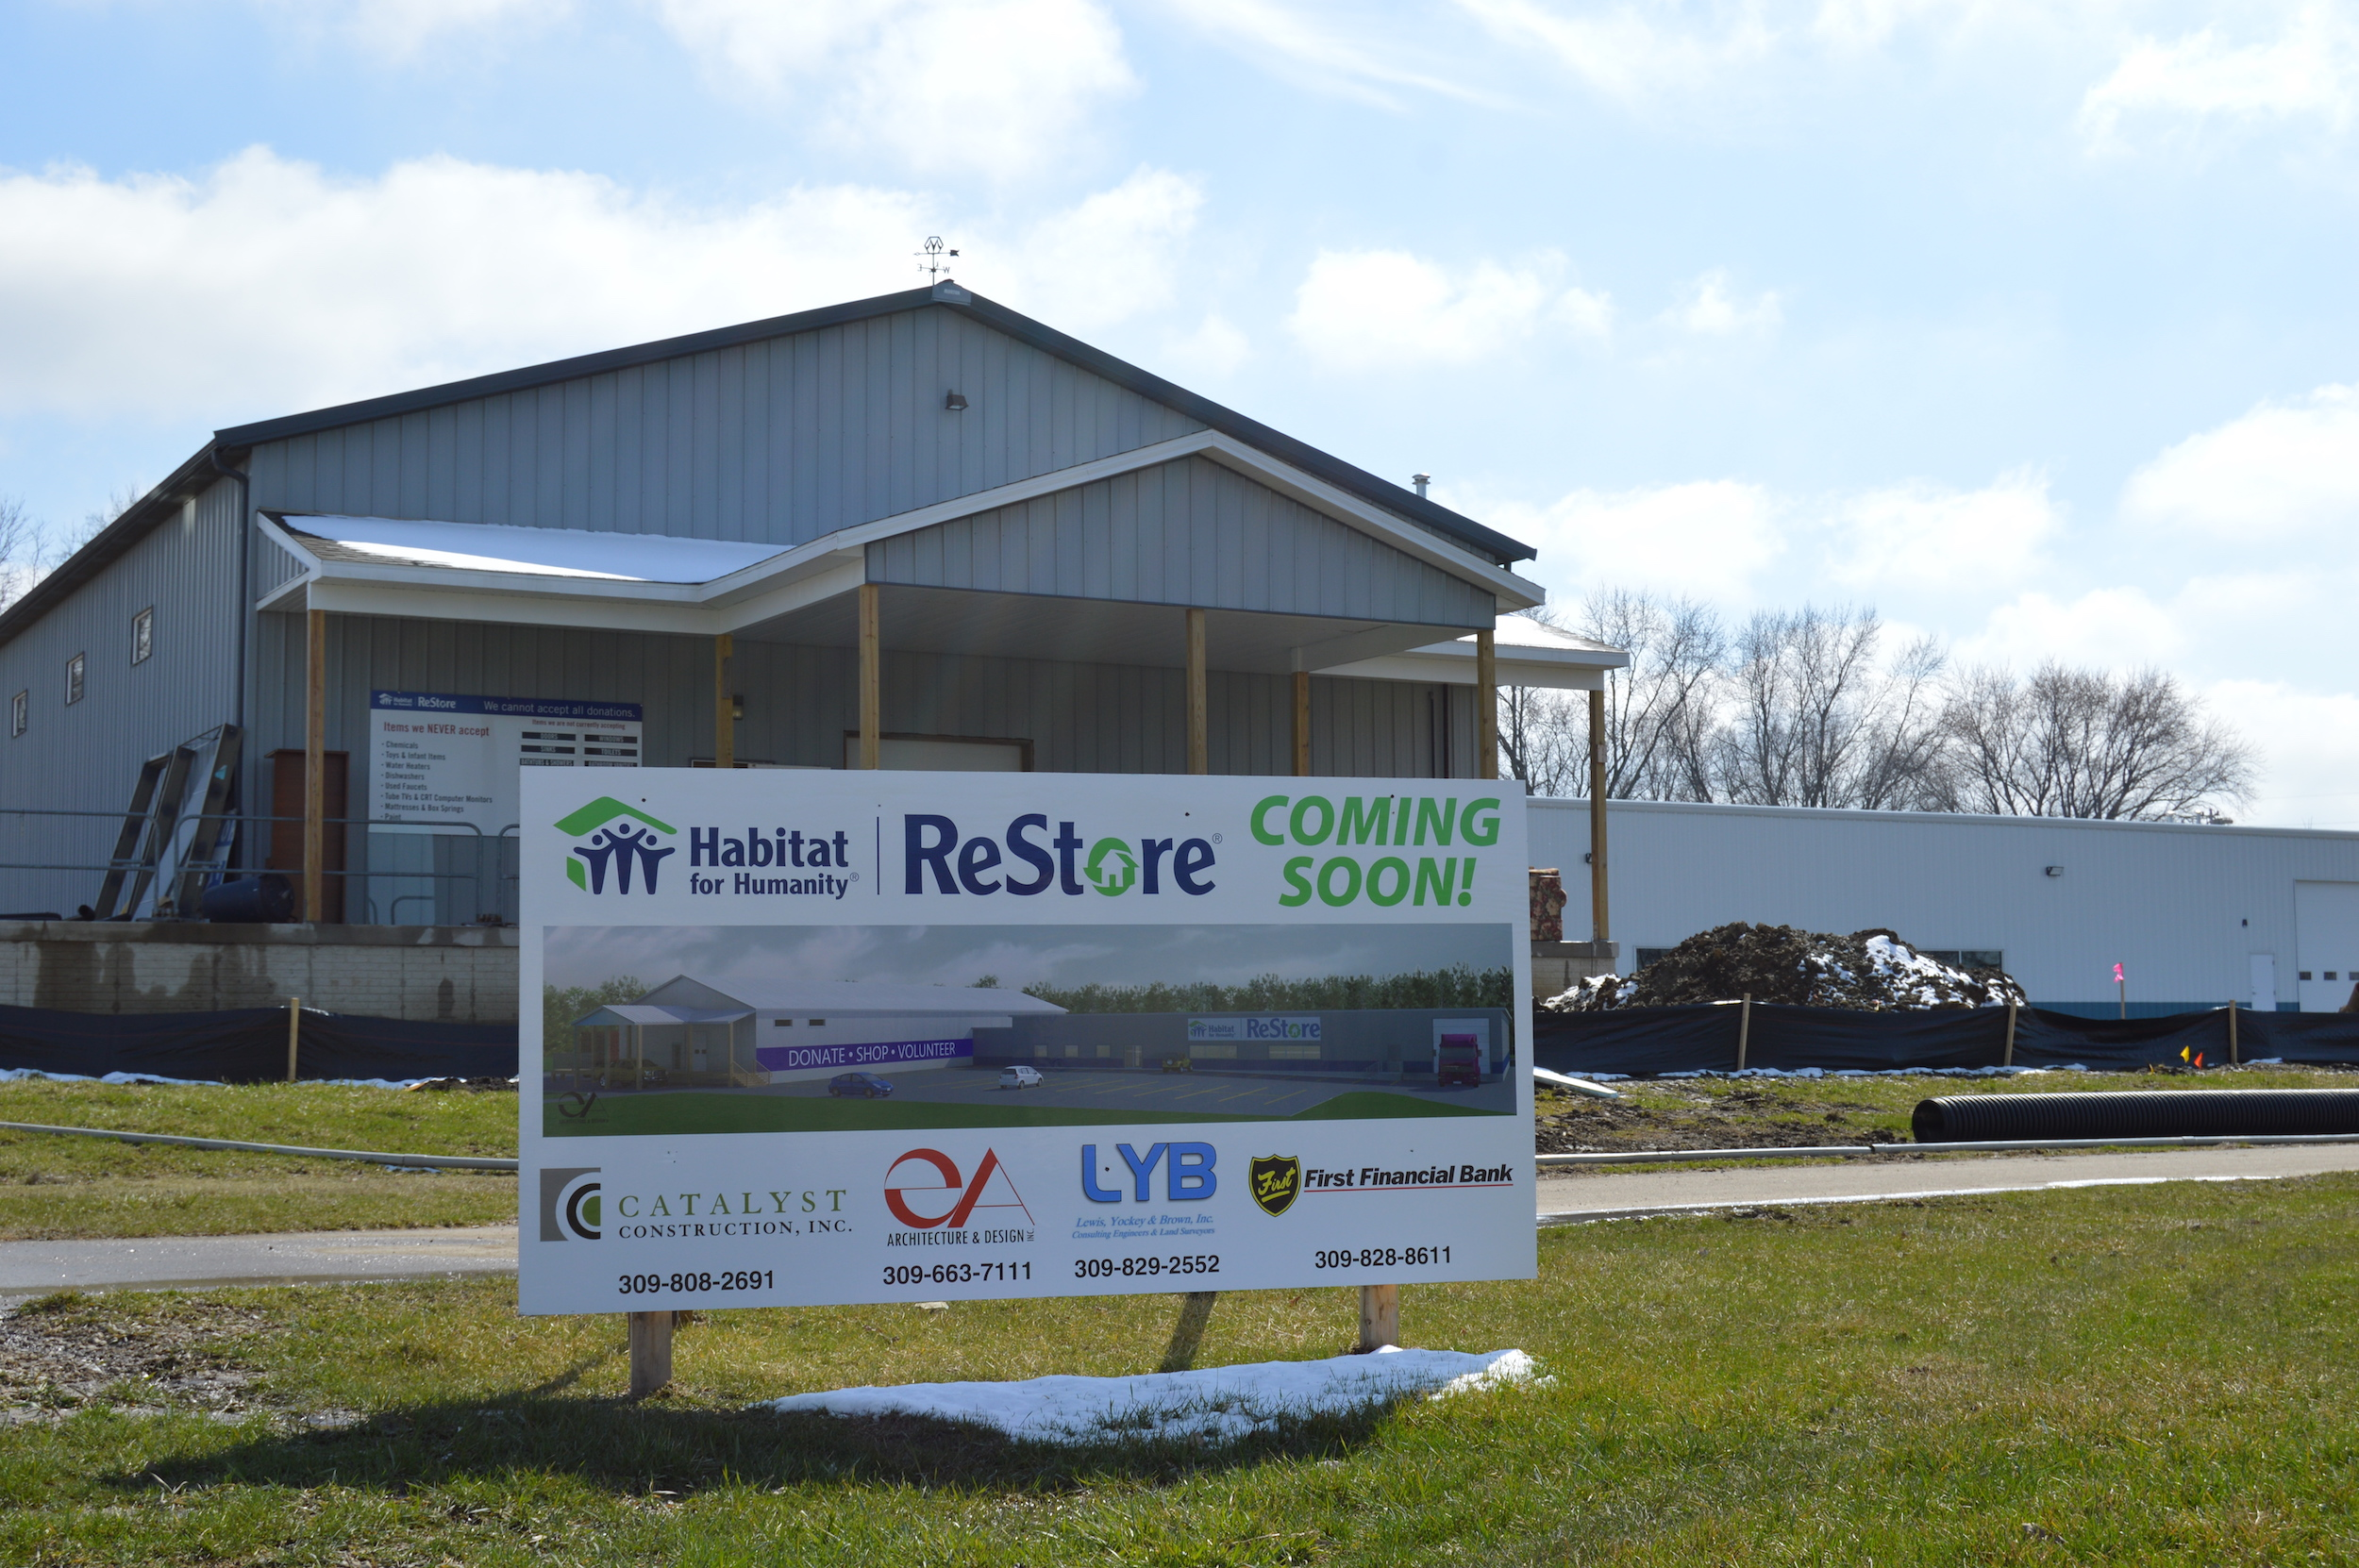 Habitat launched its nearly $1M ReStore Renewal project in late 2016, including an expansion of retail space from 8,000 sq.ft. to 20,000 sq. ft. While the solar panel component is on hold, the rest of the ReStore Renewal project is still on schedule. (Image Credit: Breanna Grow)